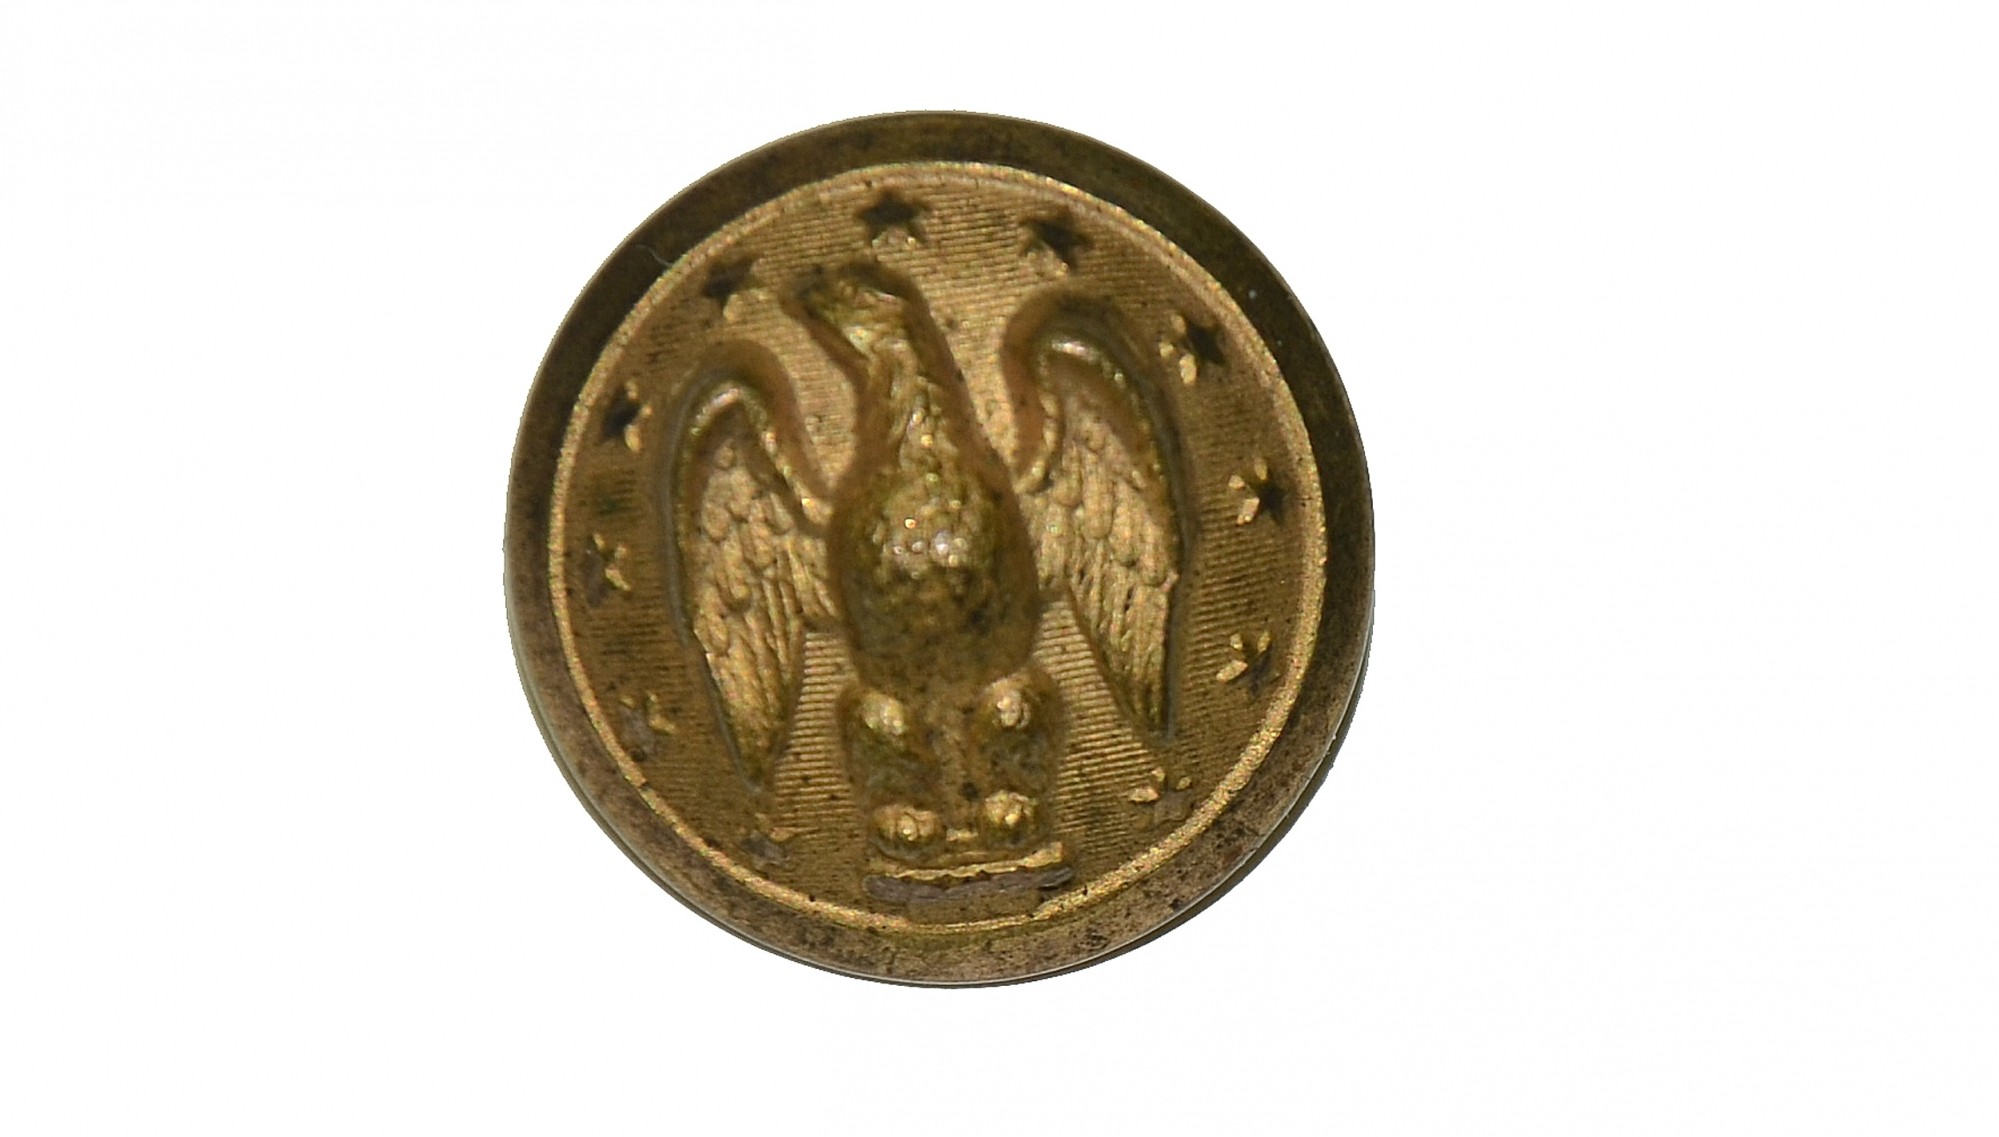 CS GENERAL STAFF COAT BUTTON